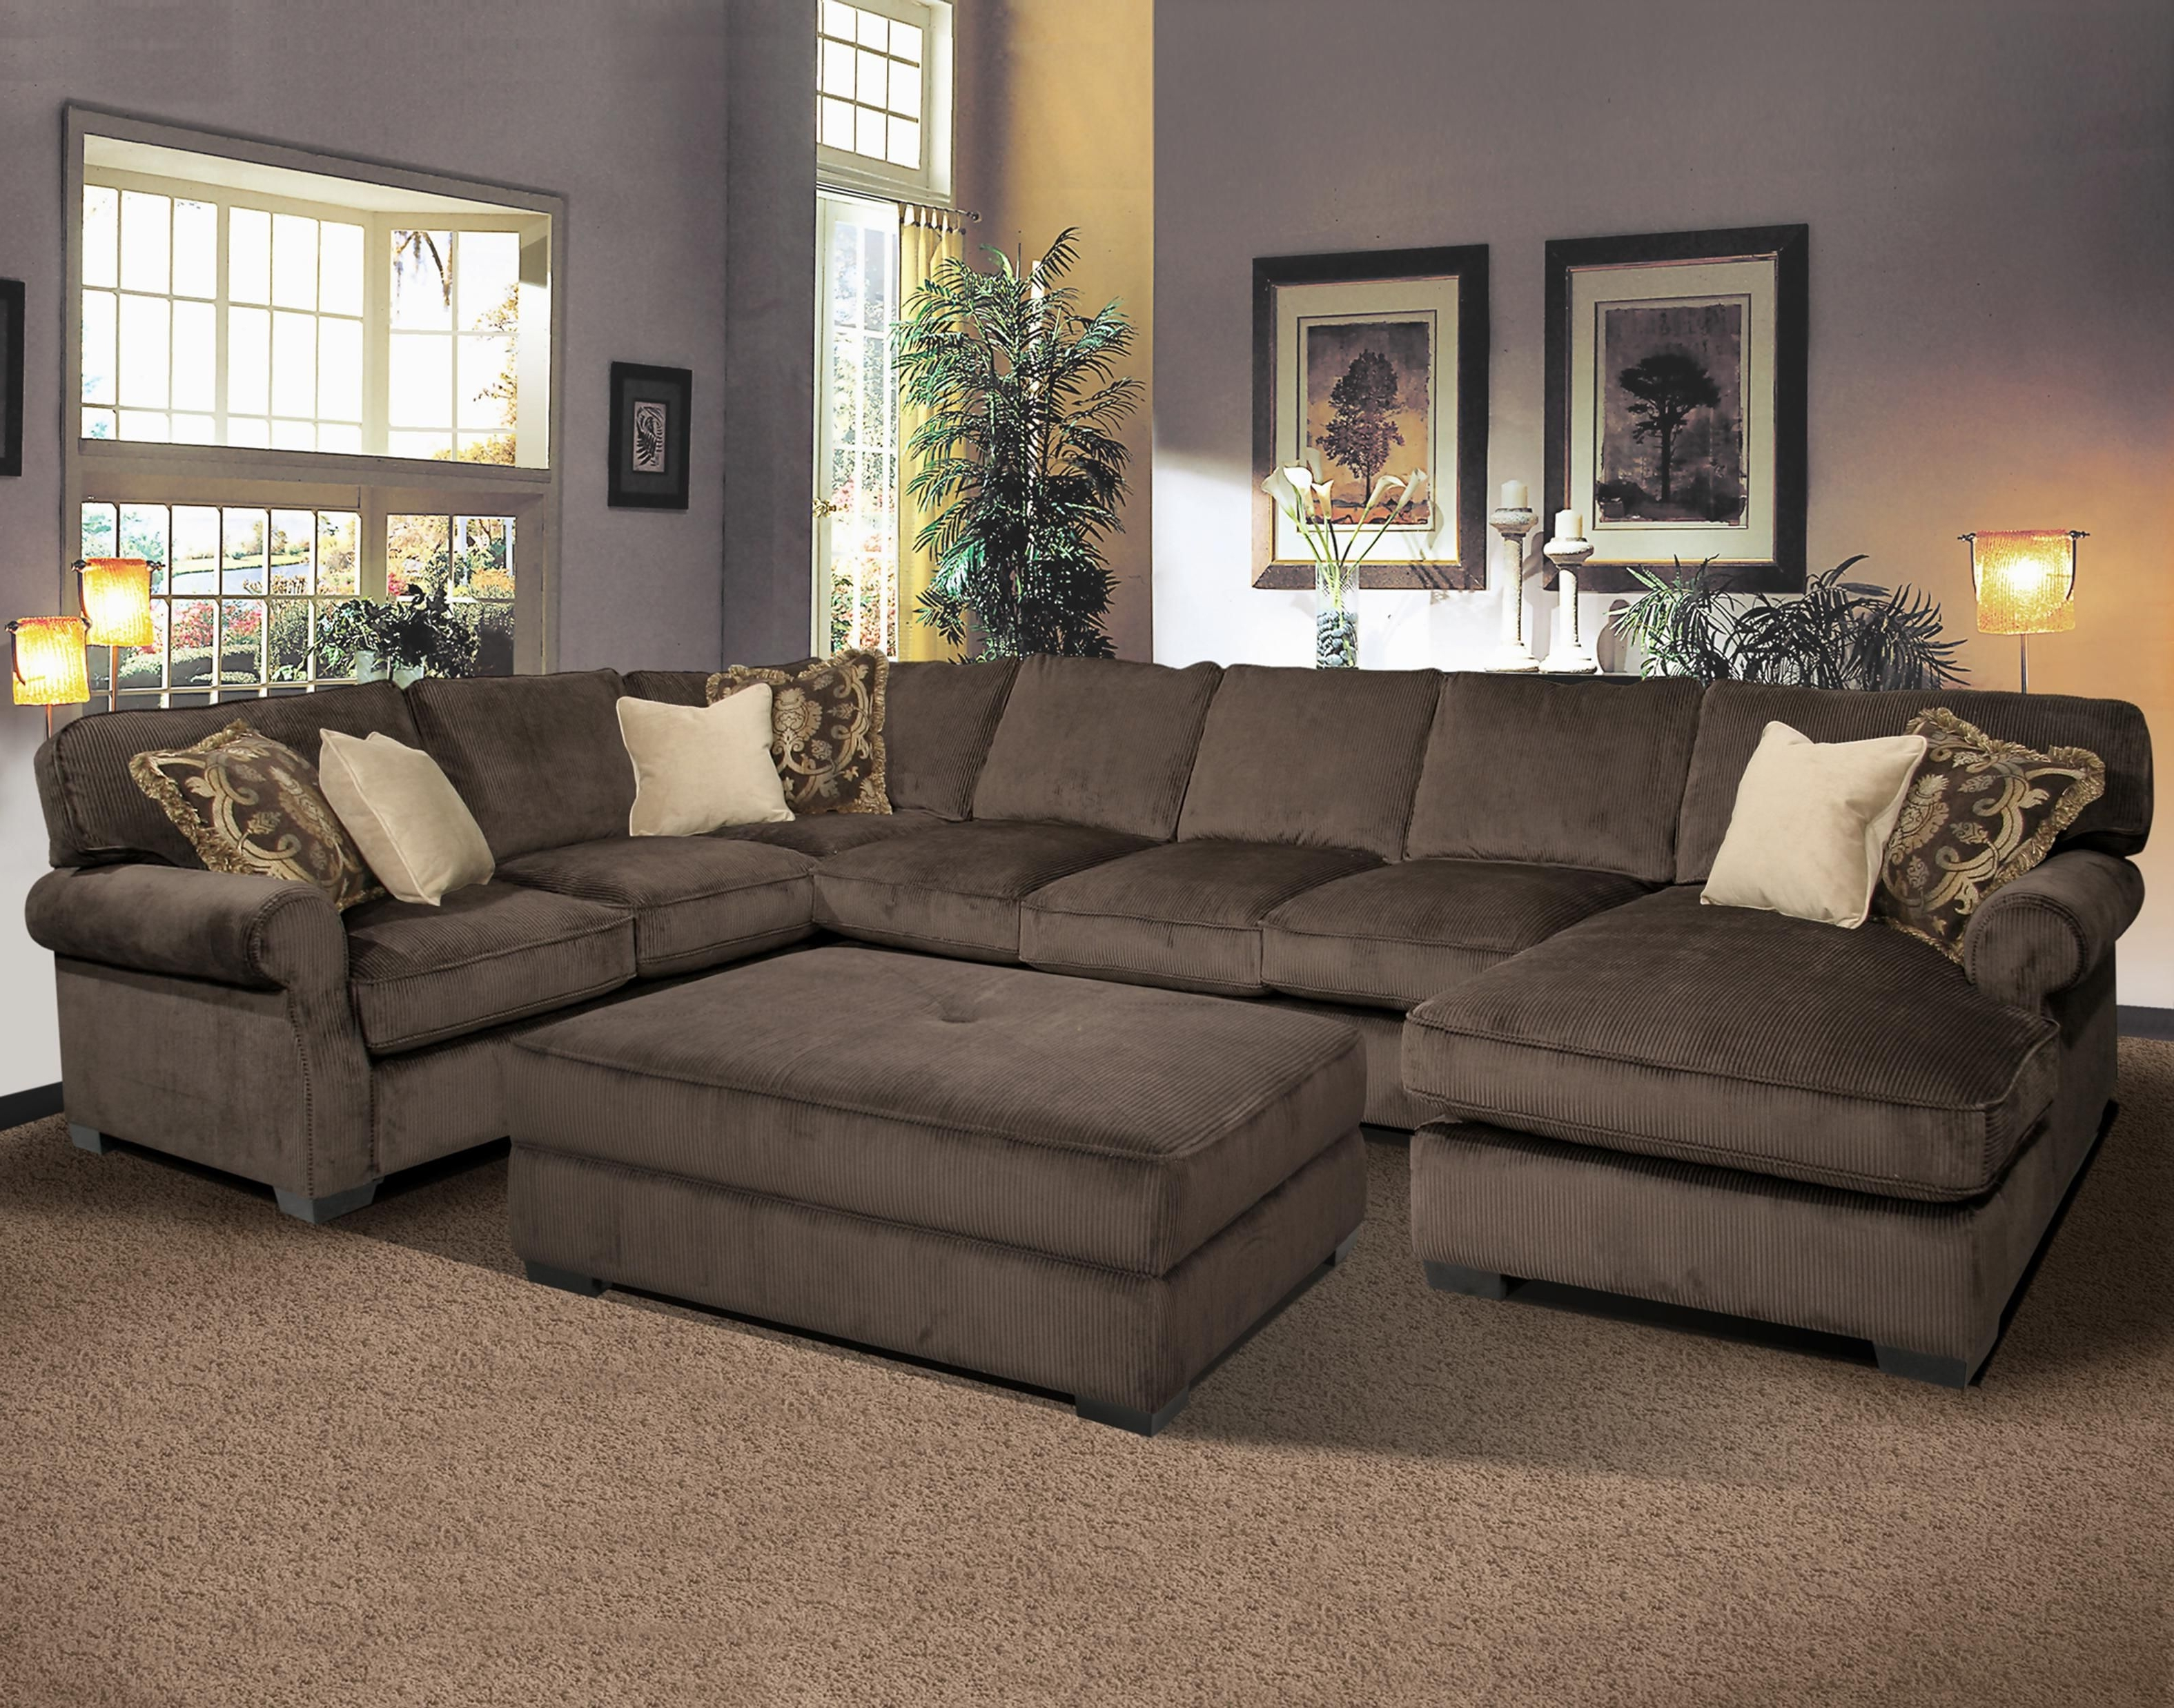 Most Recently Released Grand Island Oversized Cocktail Ottoman For Sectional Sofa Regarding Sectional Sofas In Houston Tx (View 3 of 15)